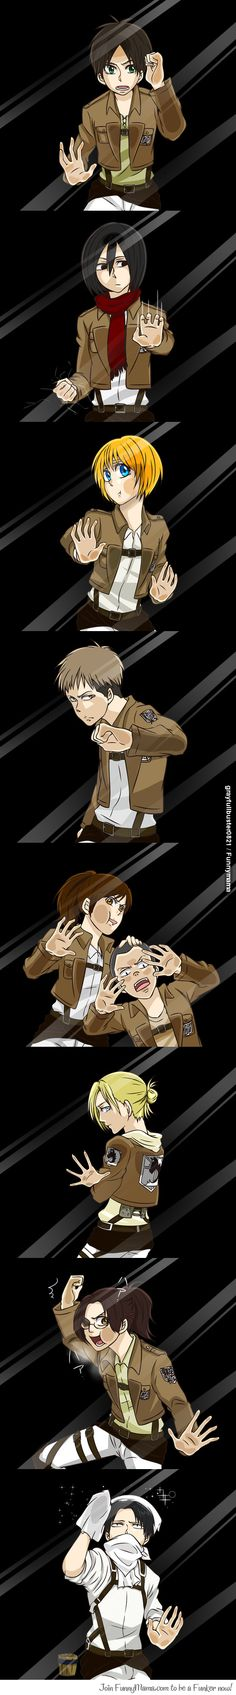 Glass pane lock screen [Humor] #eren #mikasa #armin #jean #sasha #connie #annie #hanji #levi